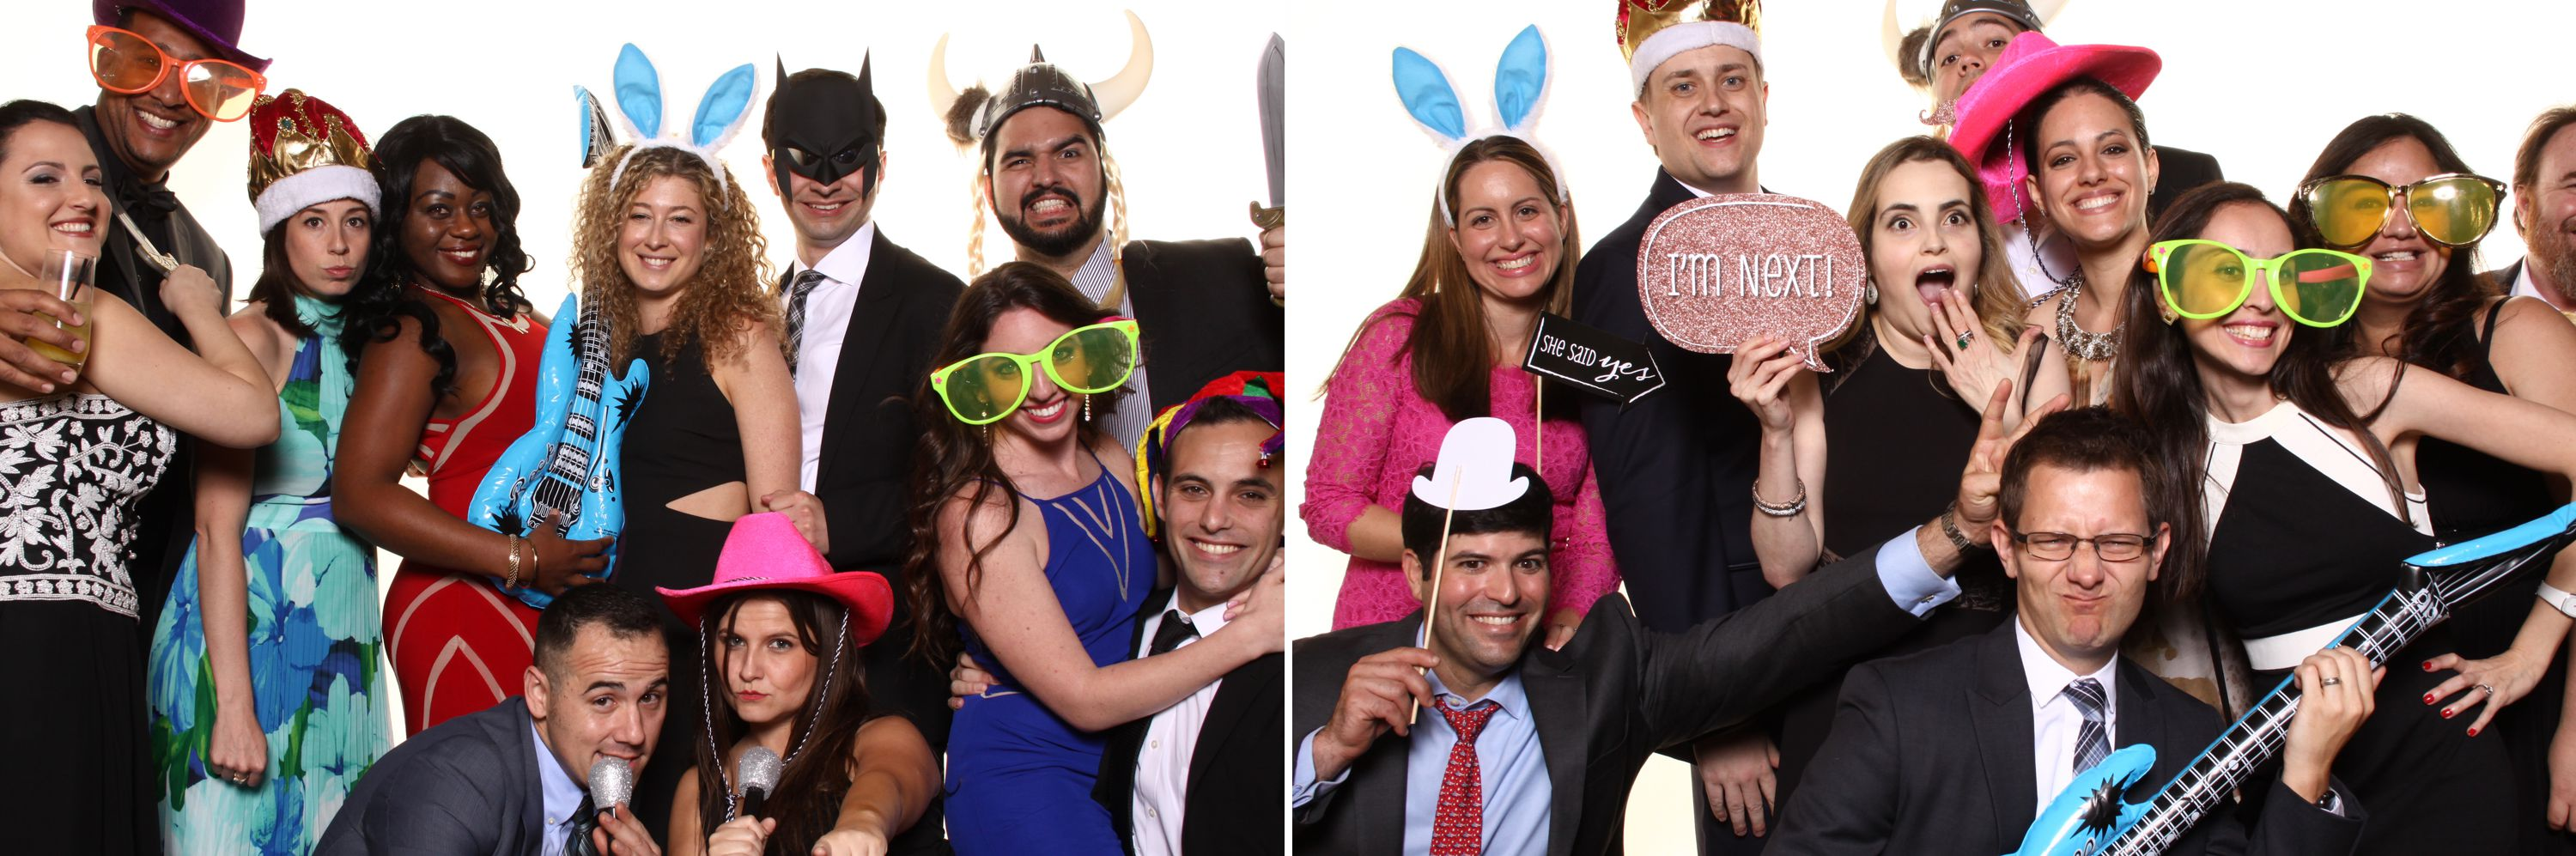 Photobooth photo with many people in it at a Diplomat Beach Resort Wedding